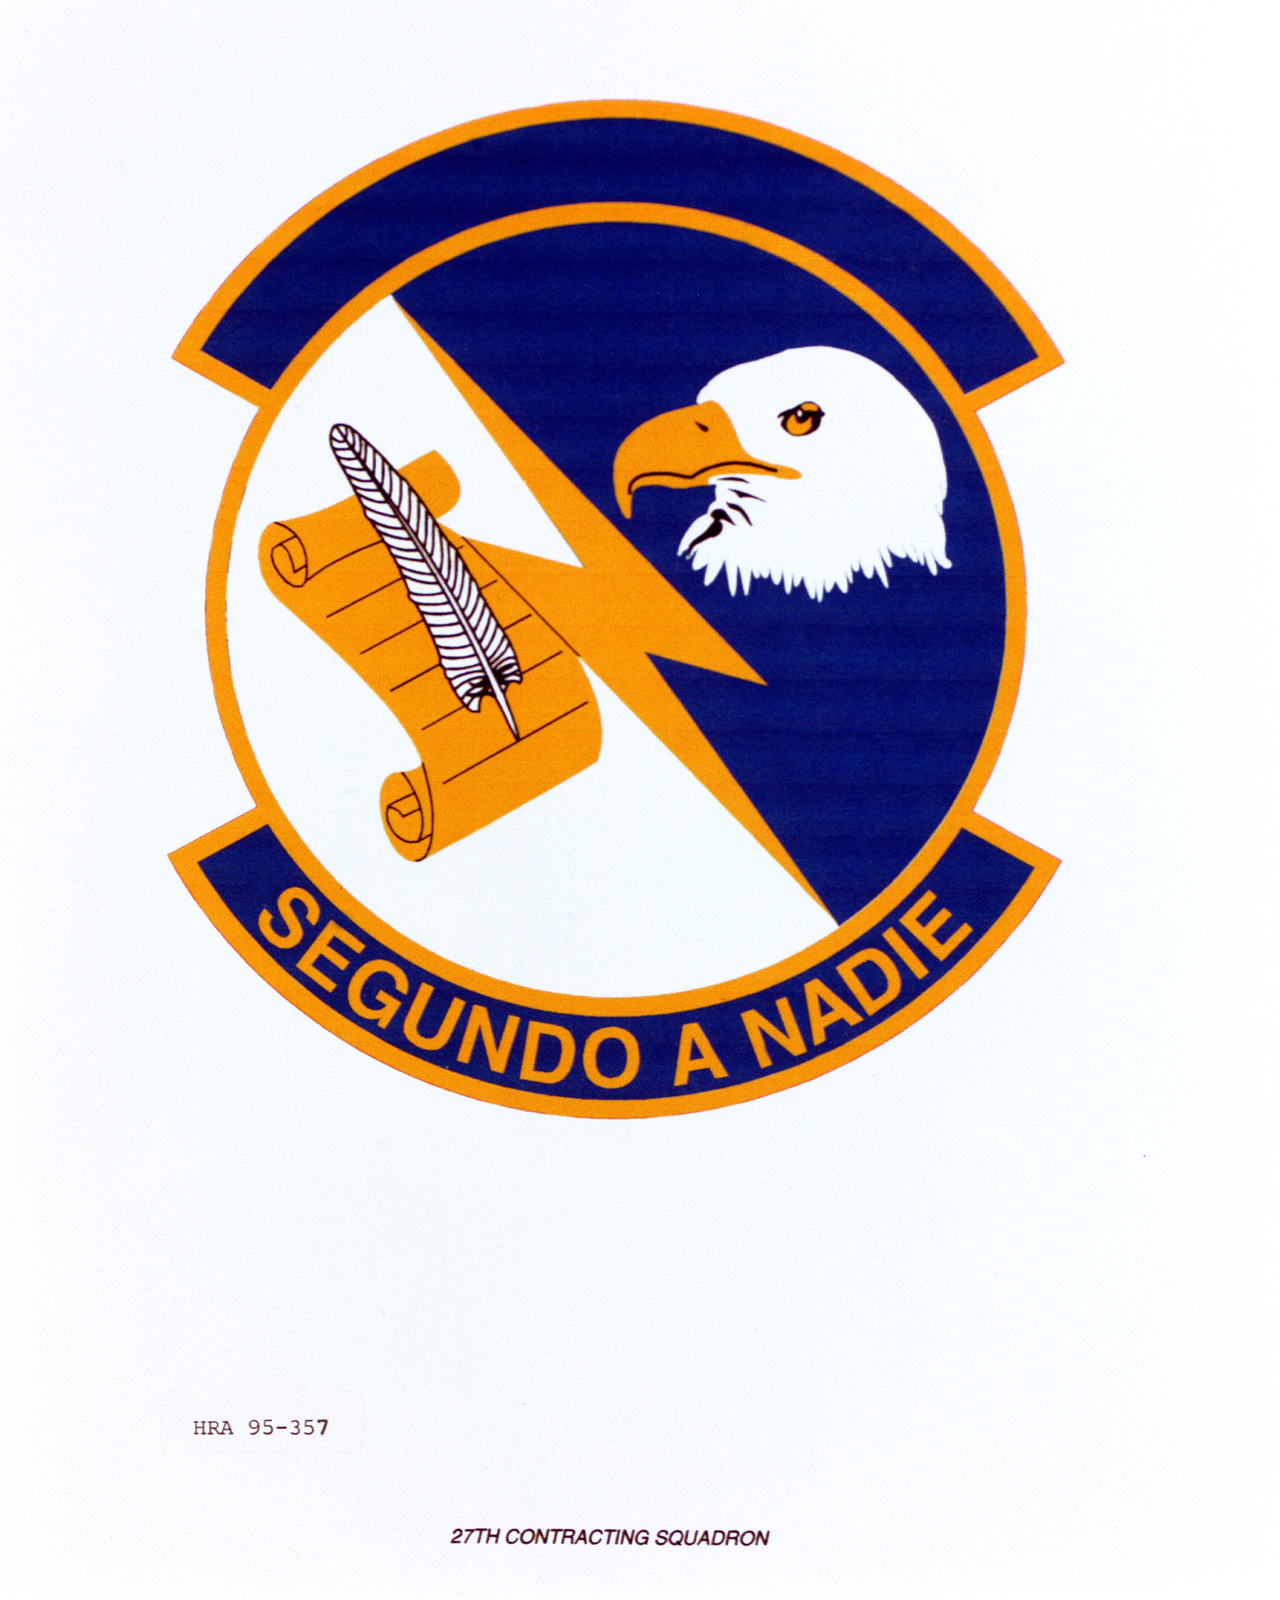 Approved Insignia for the 27th Contracting Squadron Exact Date Shot Unknown